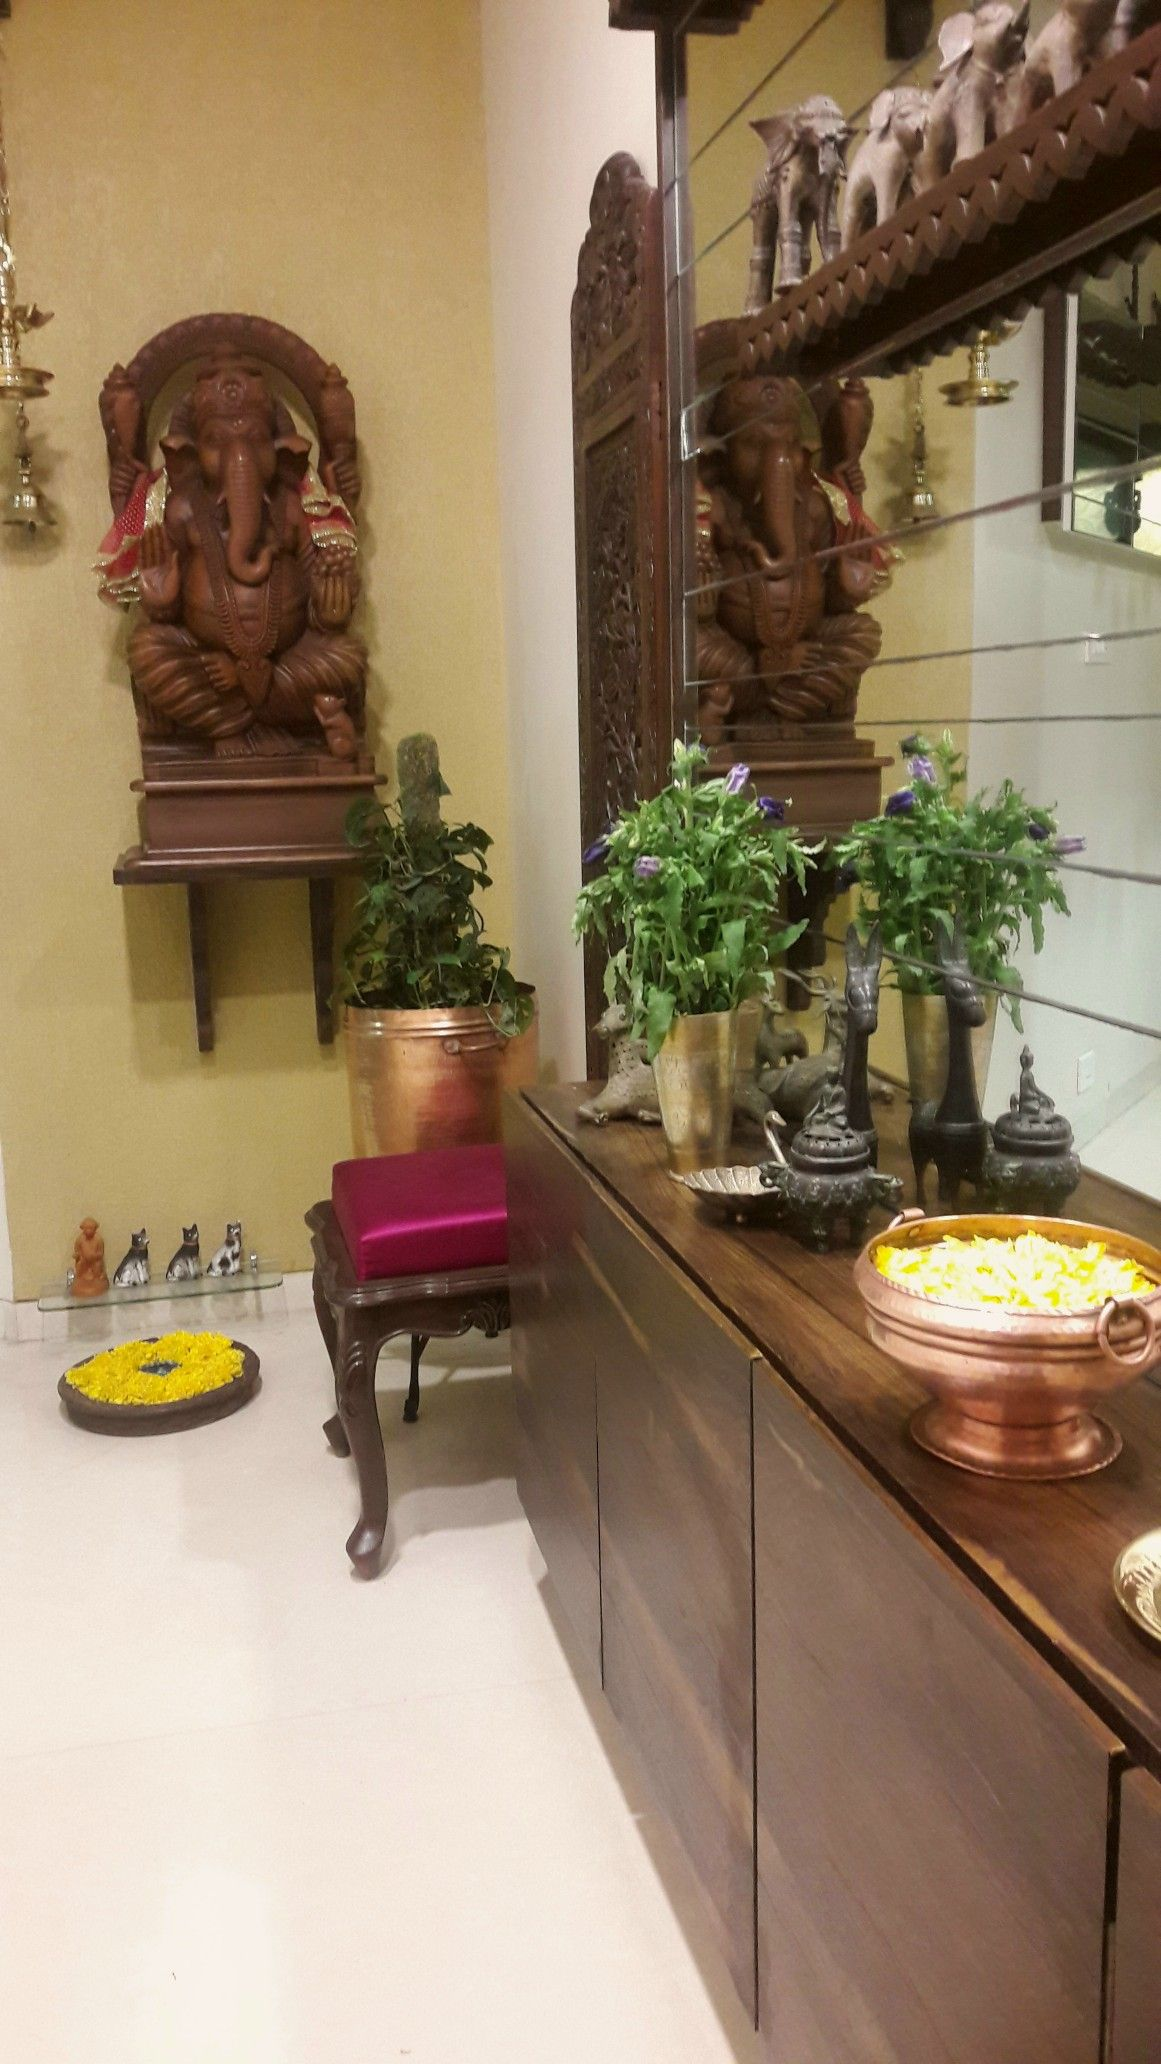 The entrance (With images) | Indian home decor, Indian ...